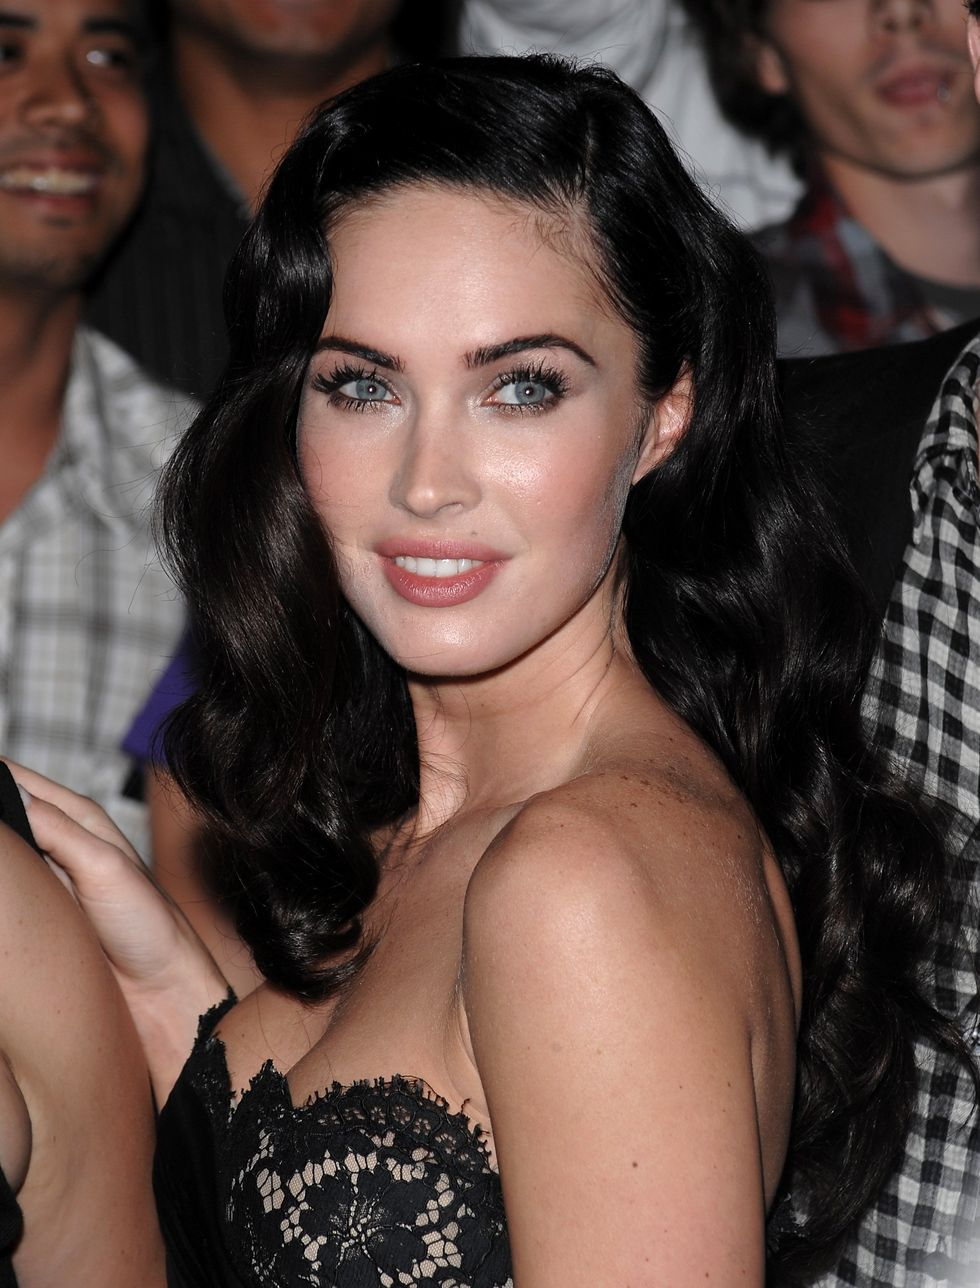 megan-fox-jennifers-body-premiere-in-toronto-01